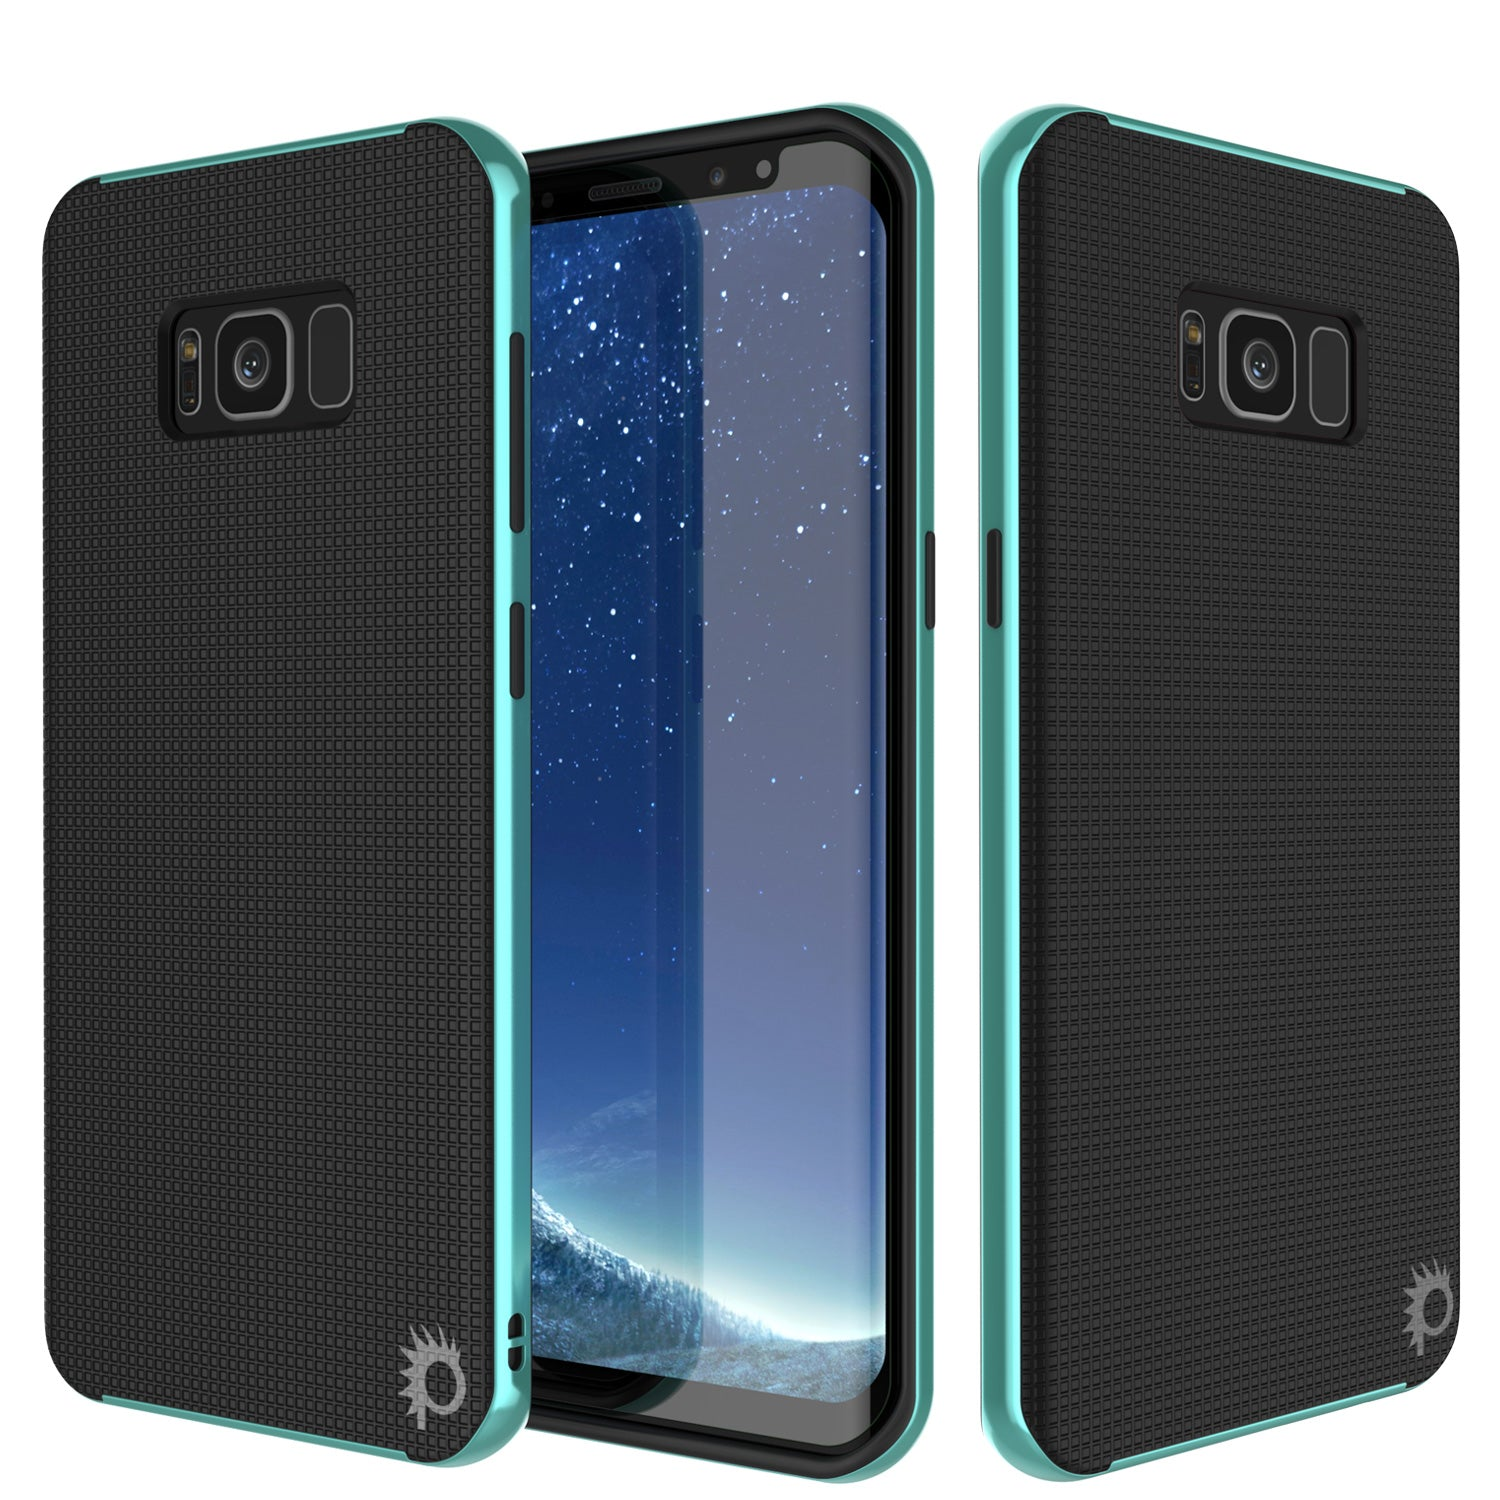 Galaxy S8 Case, PunkCase Stealth Teal Series Hybrid 3-Piece Shockproof Dual Layer Cover